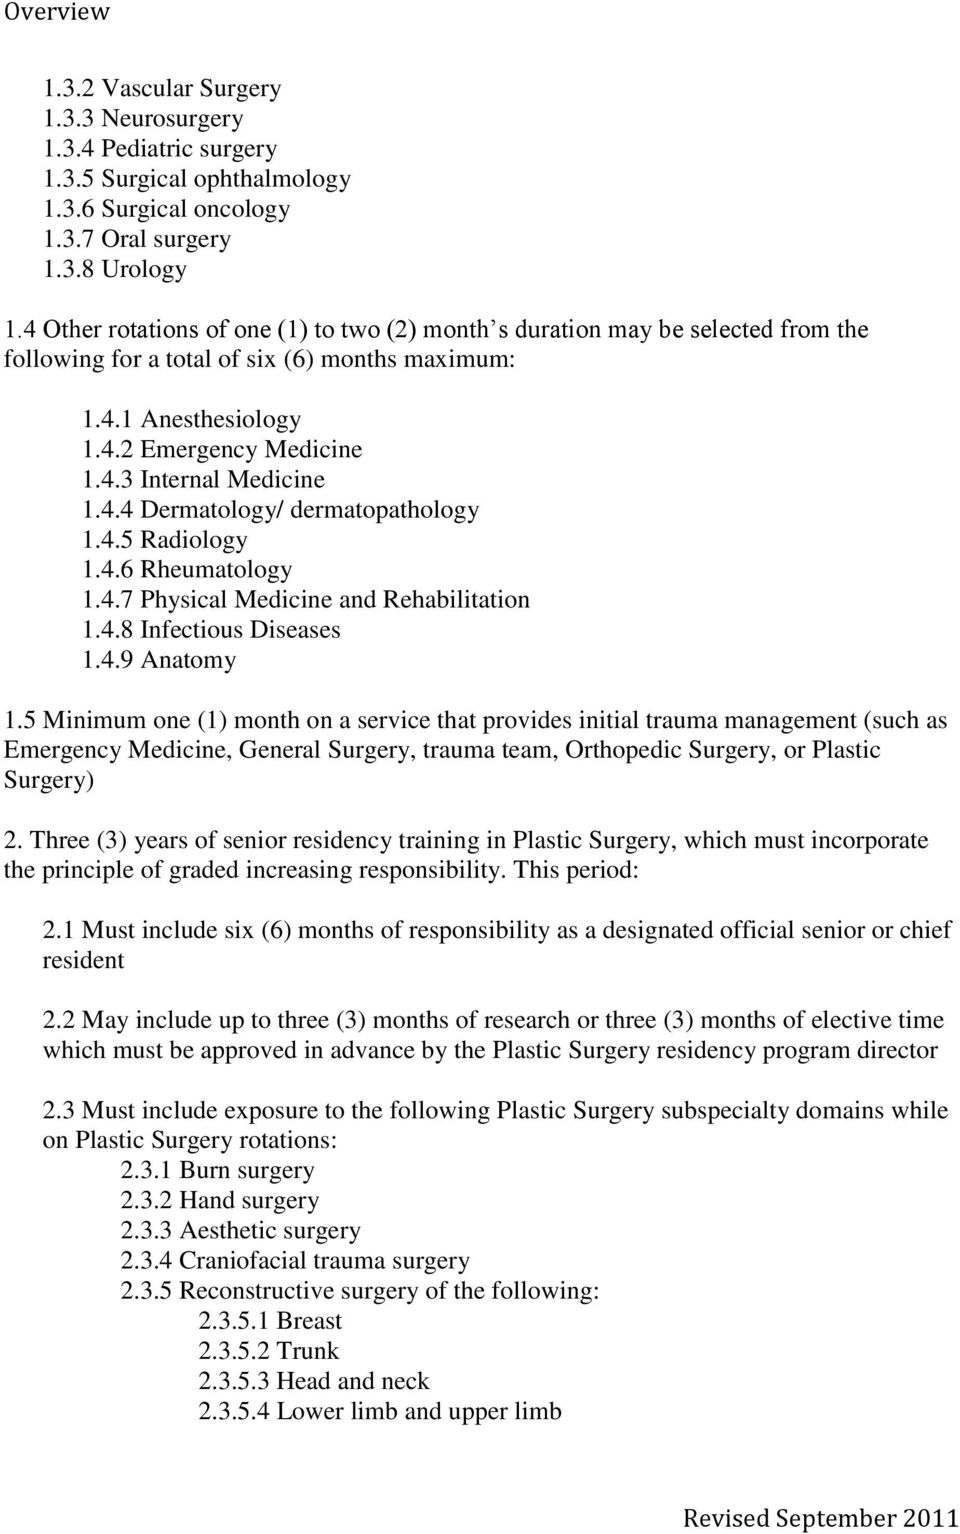 1 Objectives Of Training And Specialty Training Requirements In Plastic Surgery Pdf Free Download